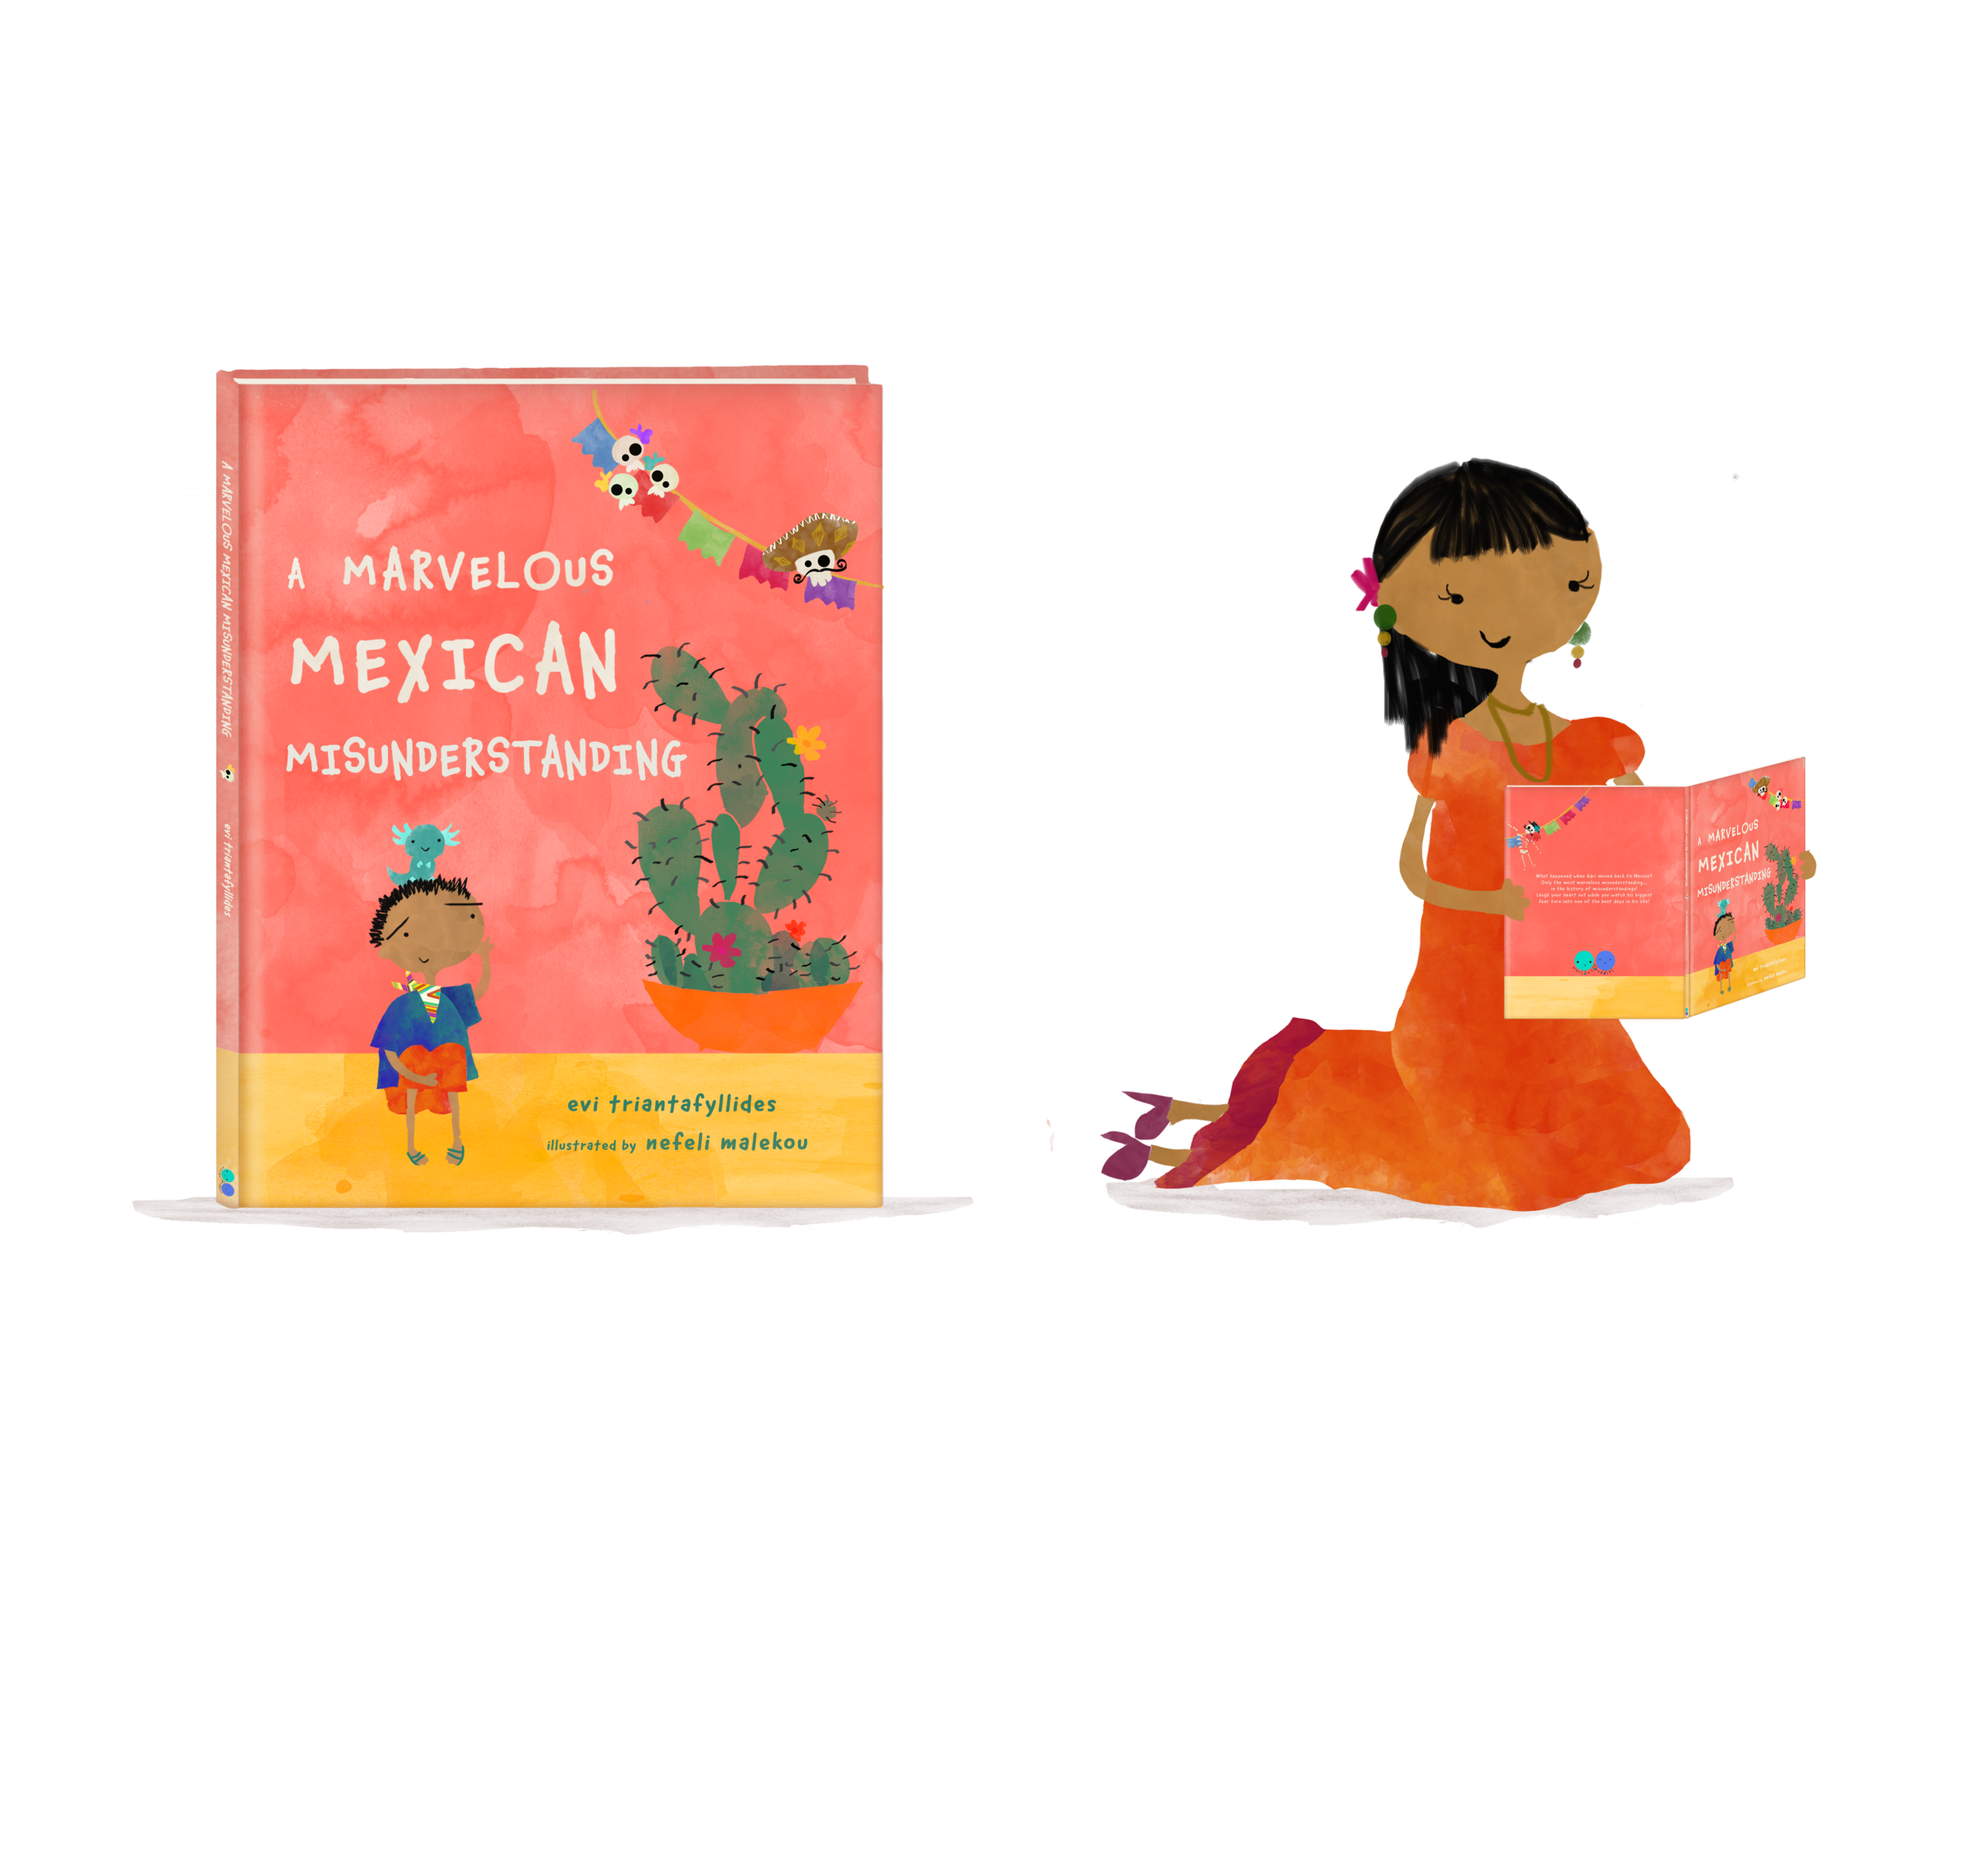 """Mexico's Wonders - Our first book, """"A Marvelous Mexican Misunderstanding"""" is about to come out.Discover Mexico's marvelous wonders and follow Adri while he uncovers the biggest misunderstanding...in the history of misunderstandings!"""